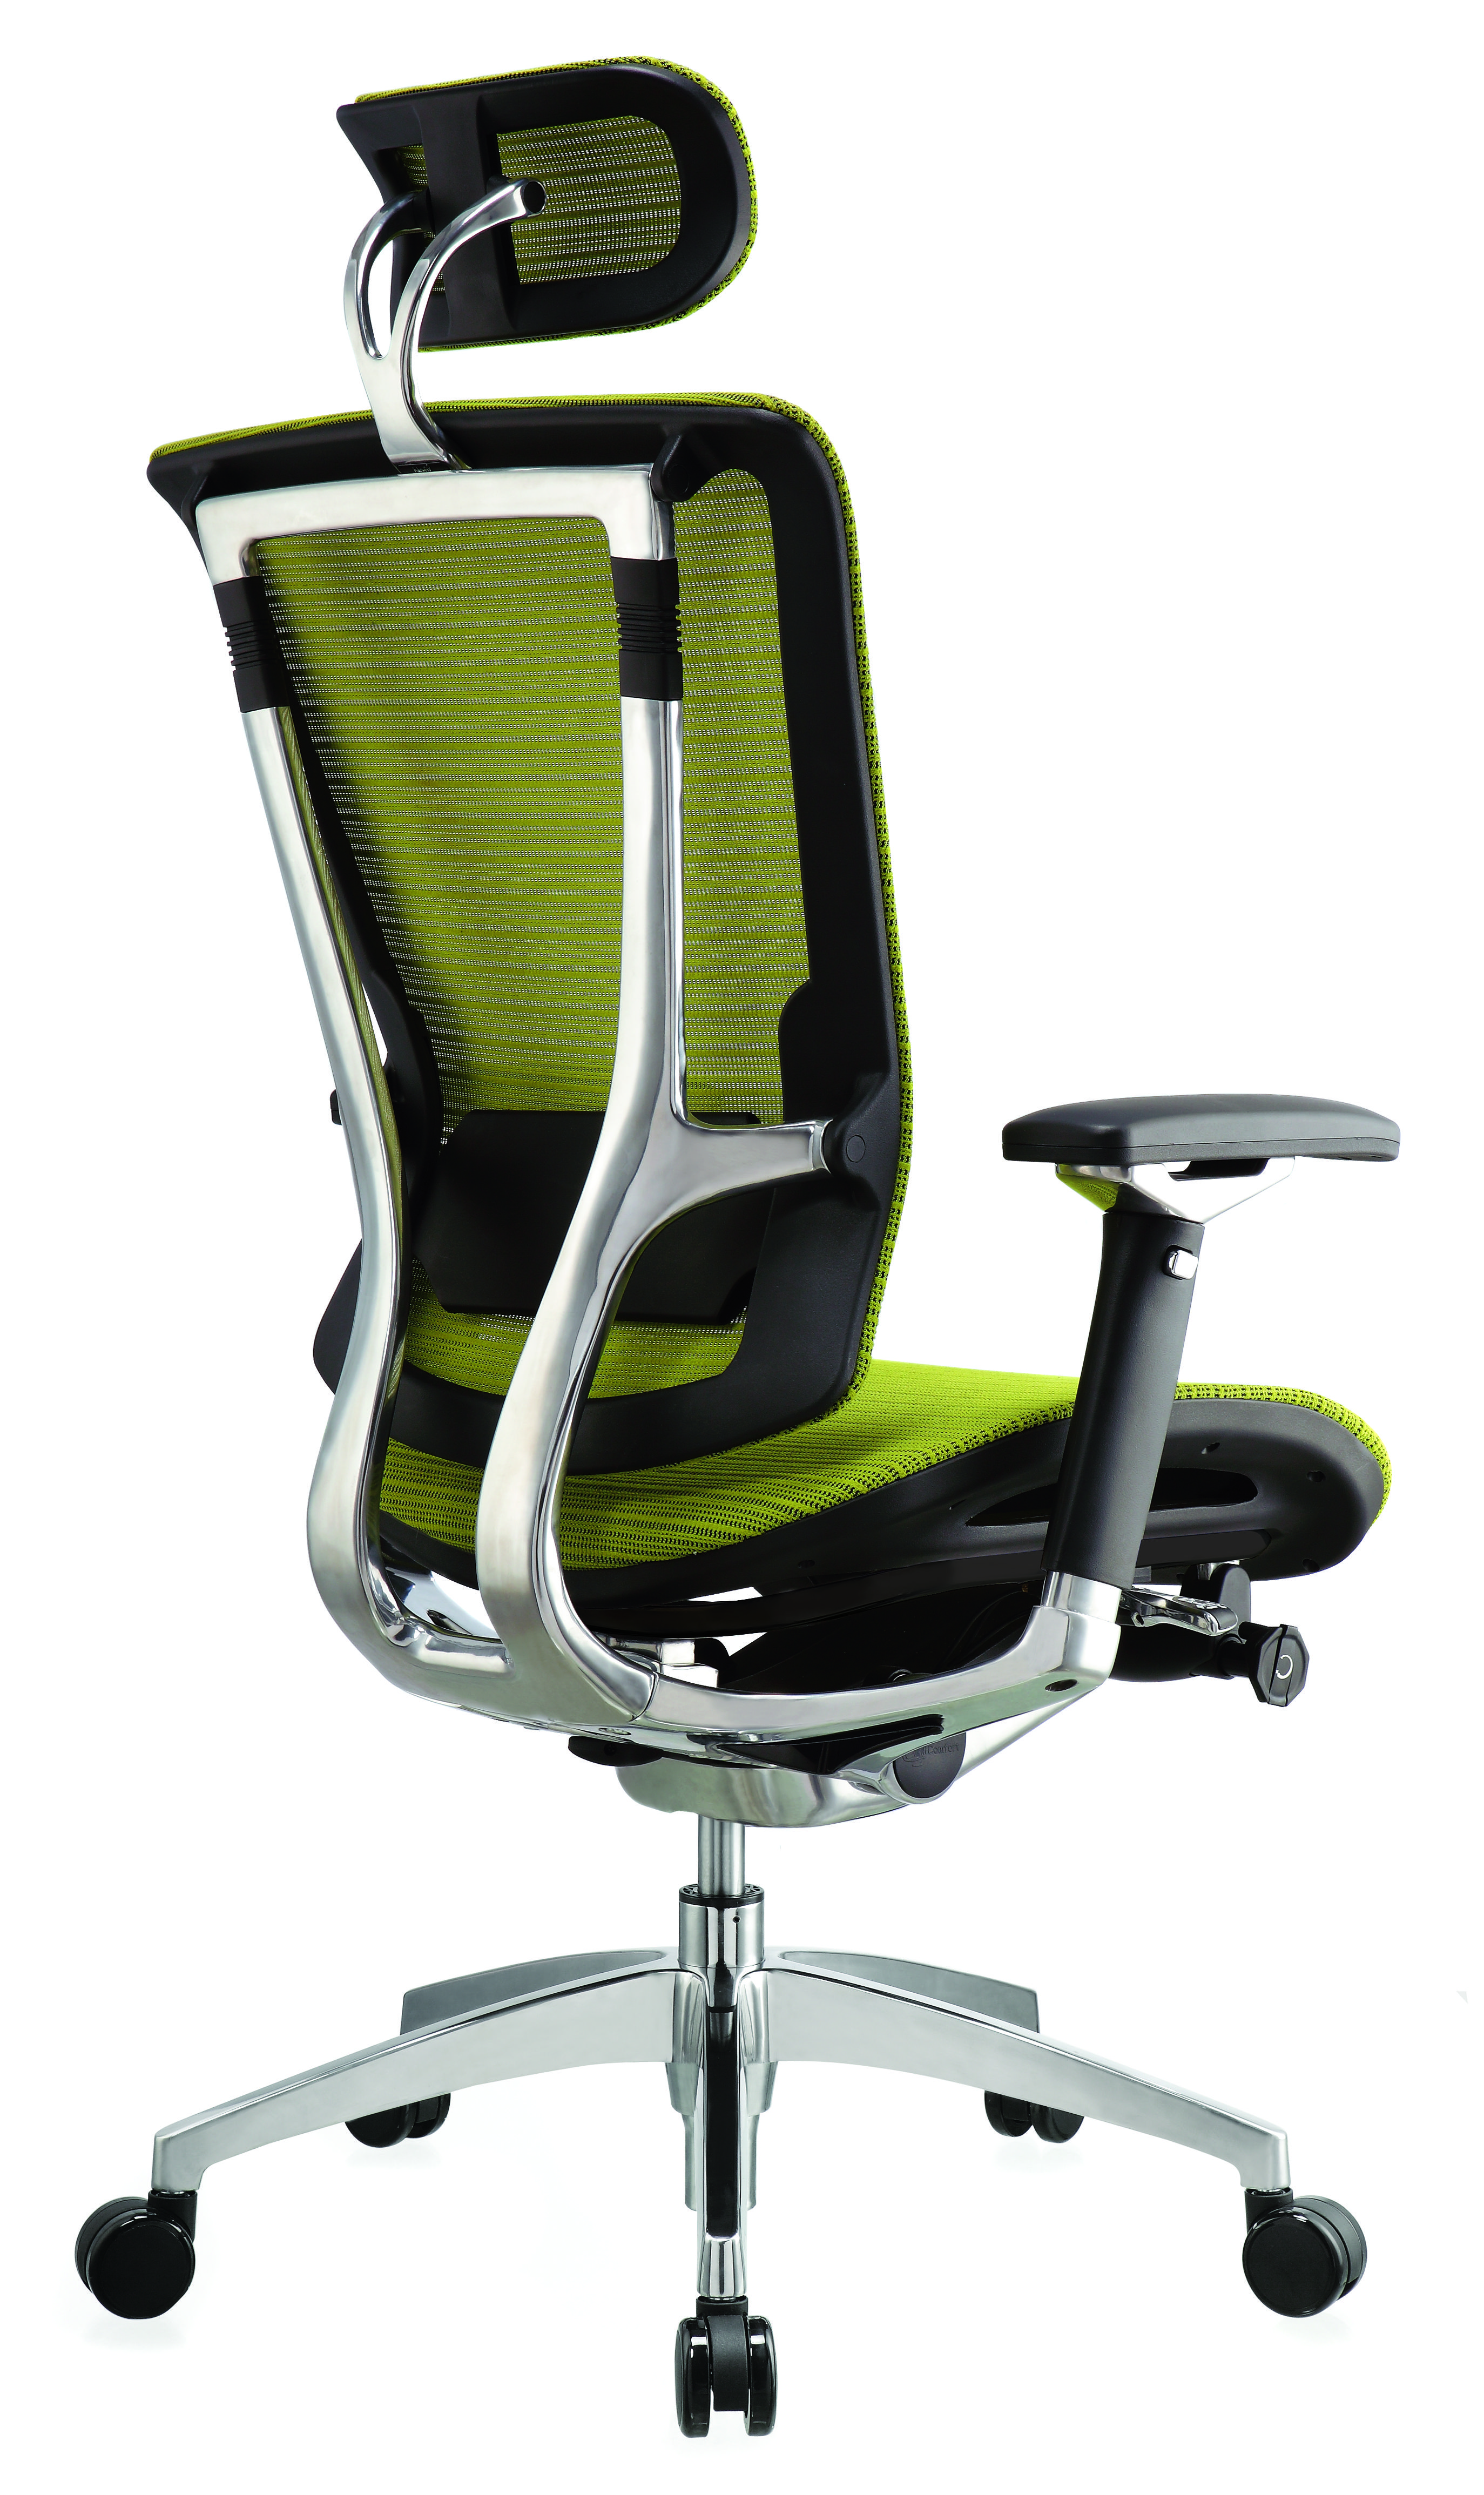 Green Computer Chair Exquisite Desk Chairs Uk Office Design With Headrest